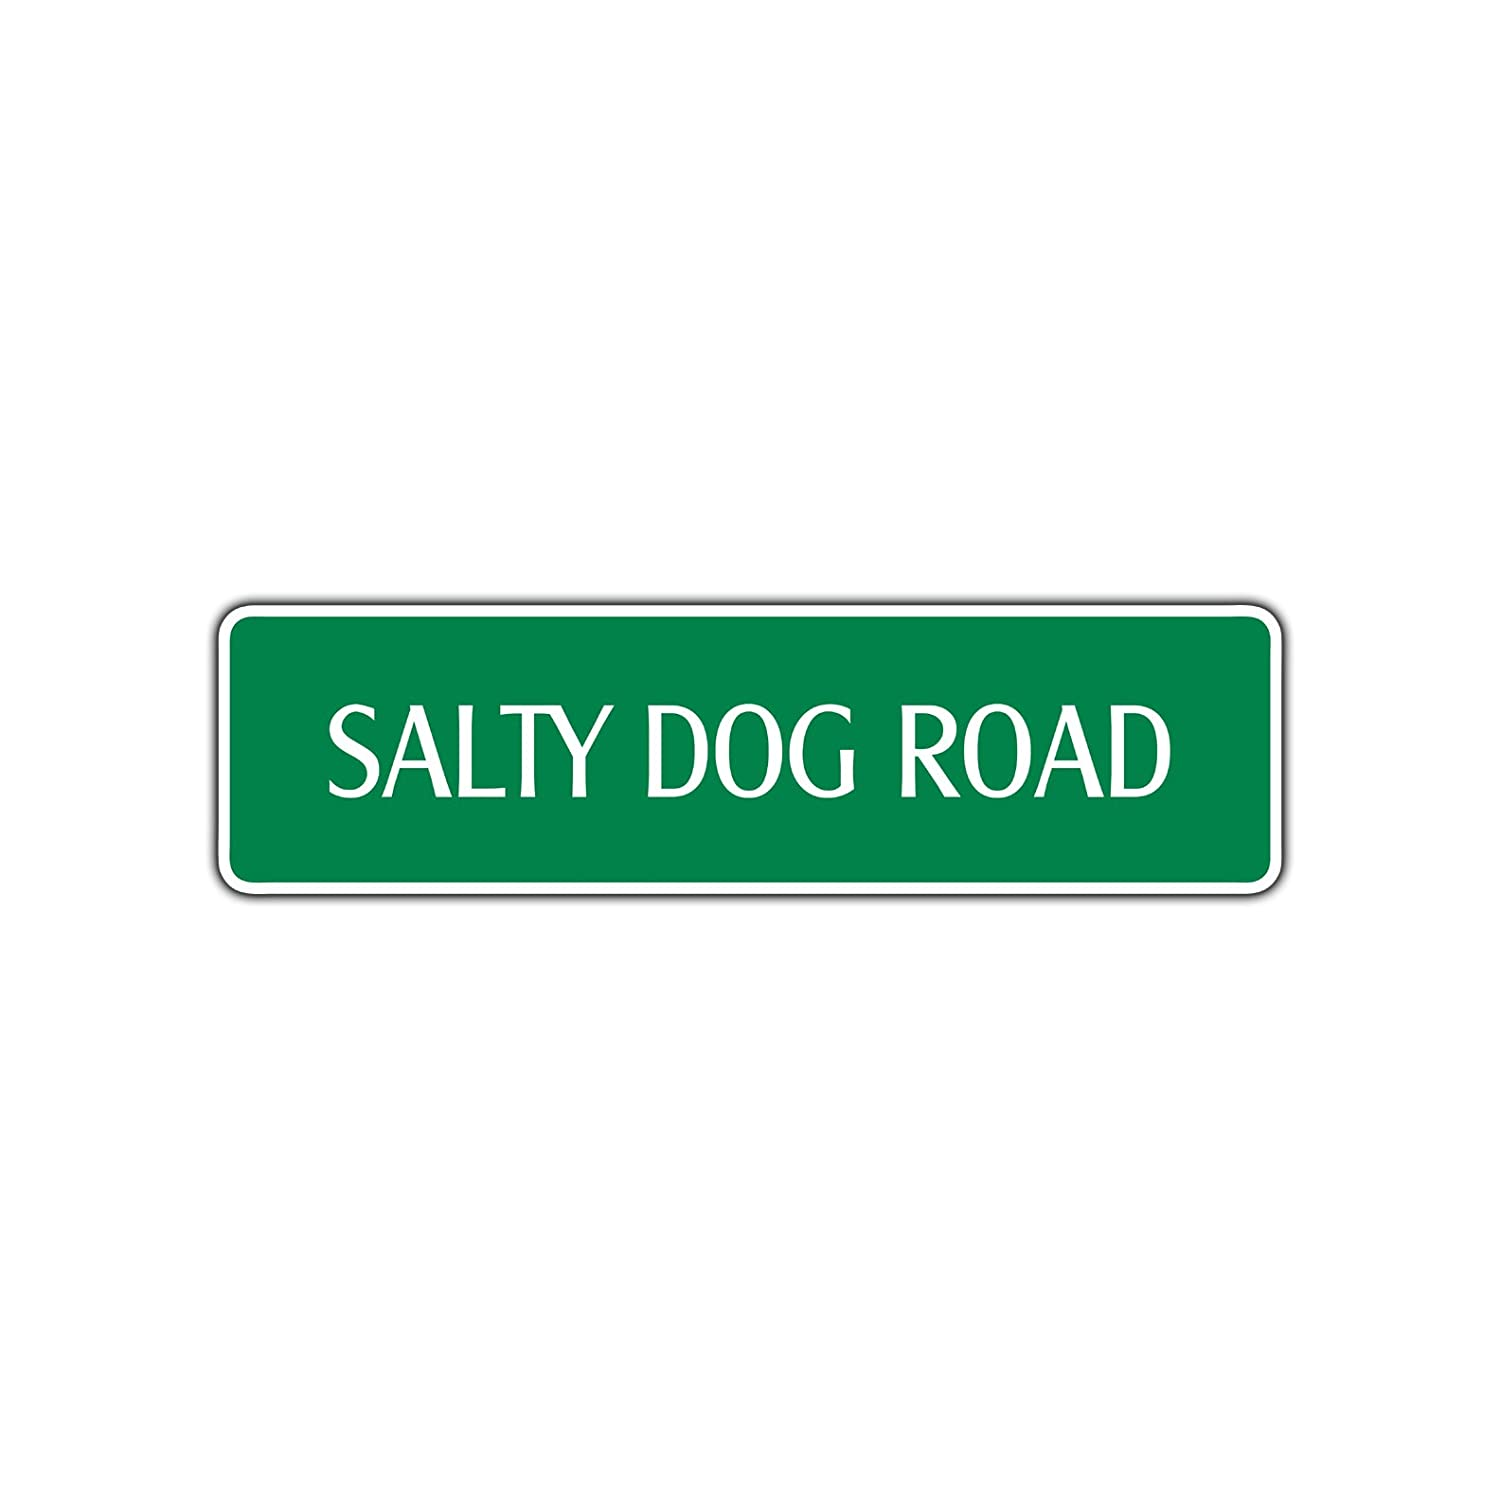 Salty Dog Road Cartel de metal para cóctel, zumo, bebida ...